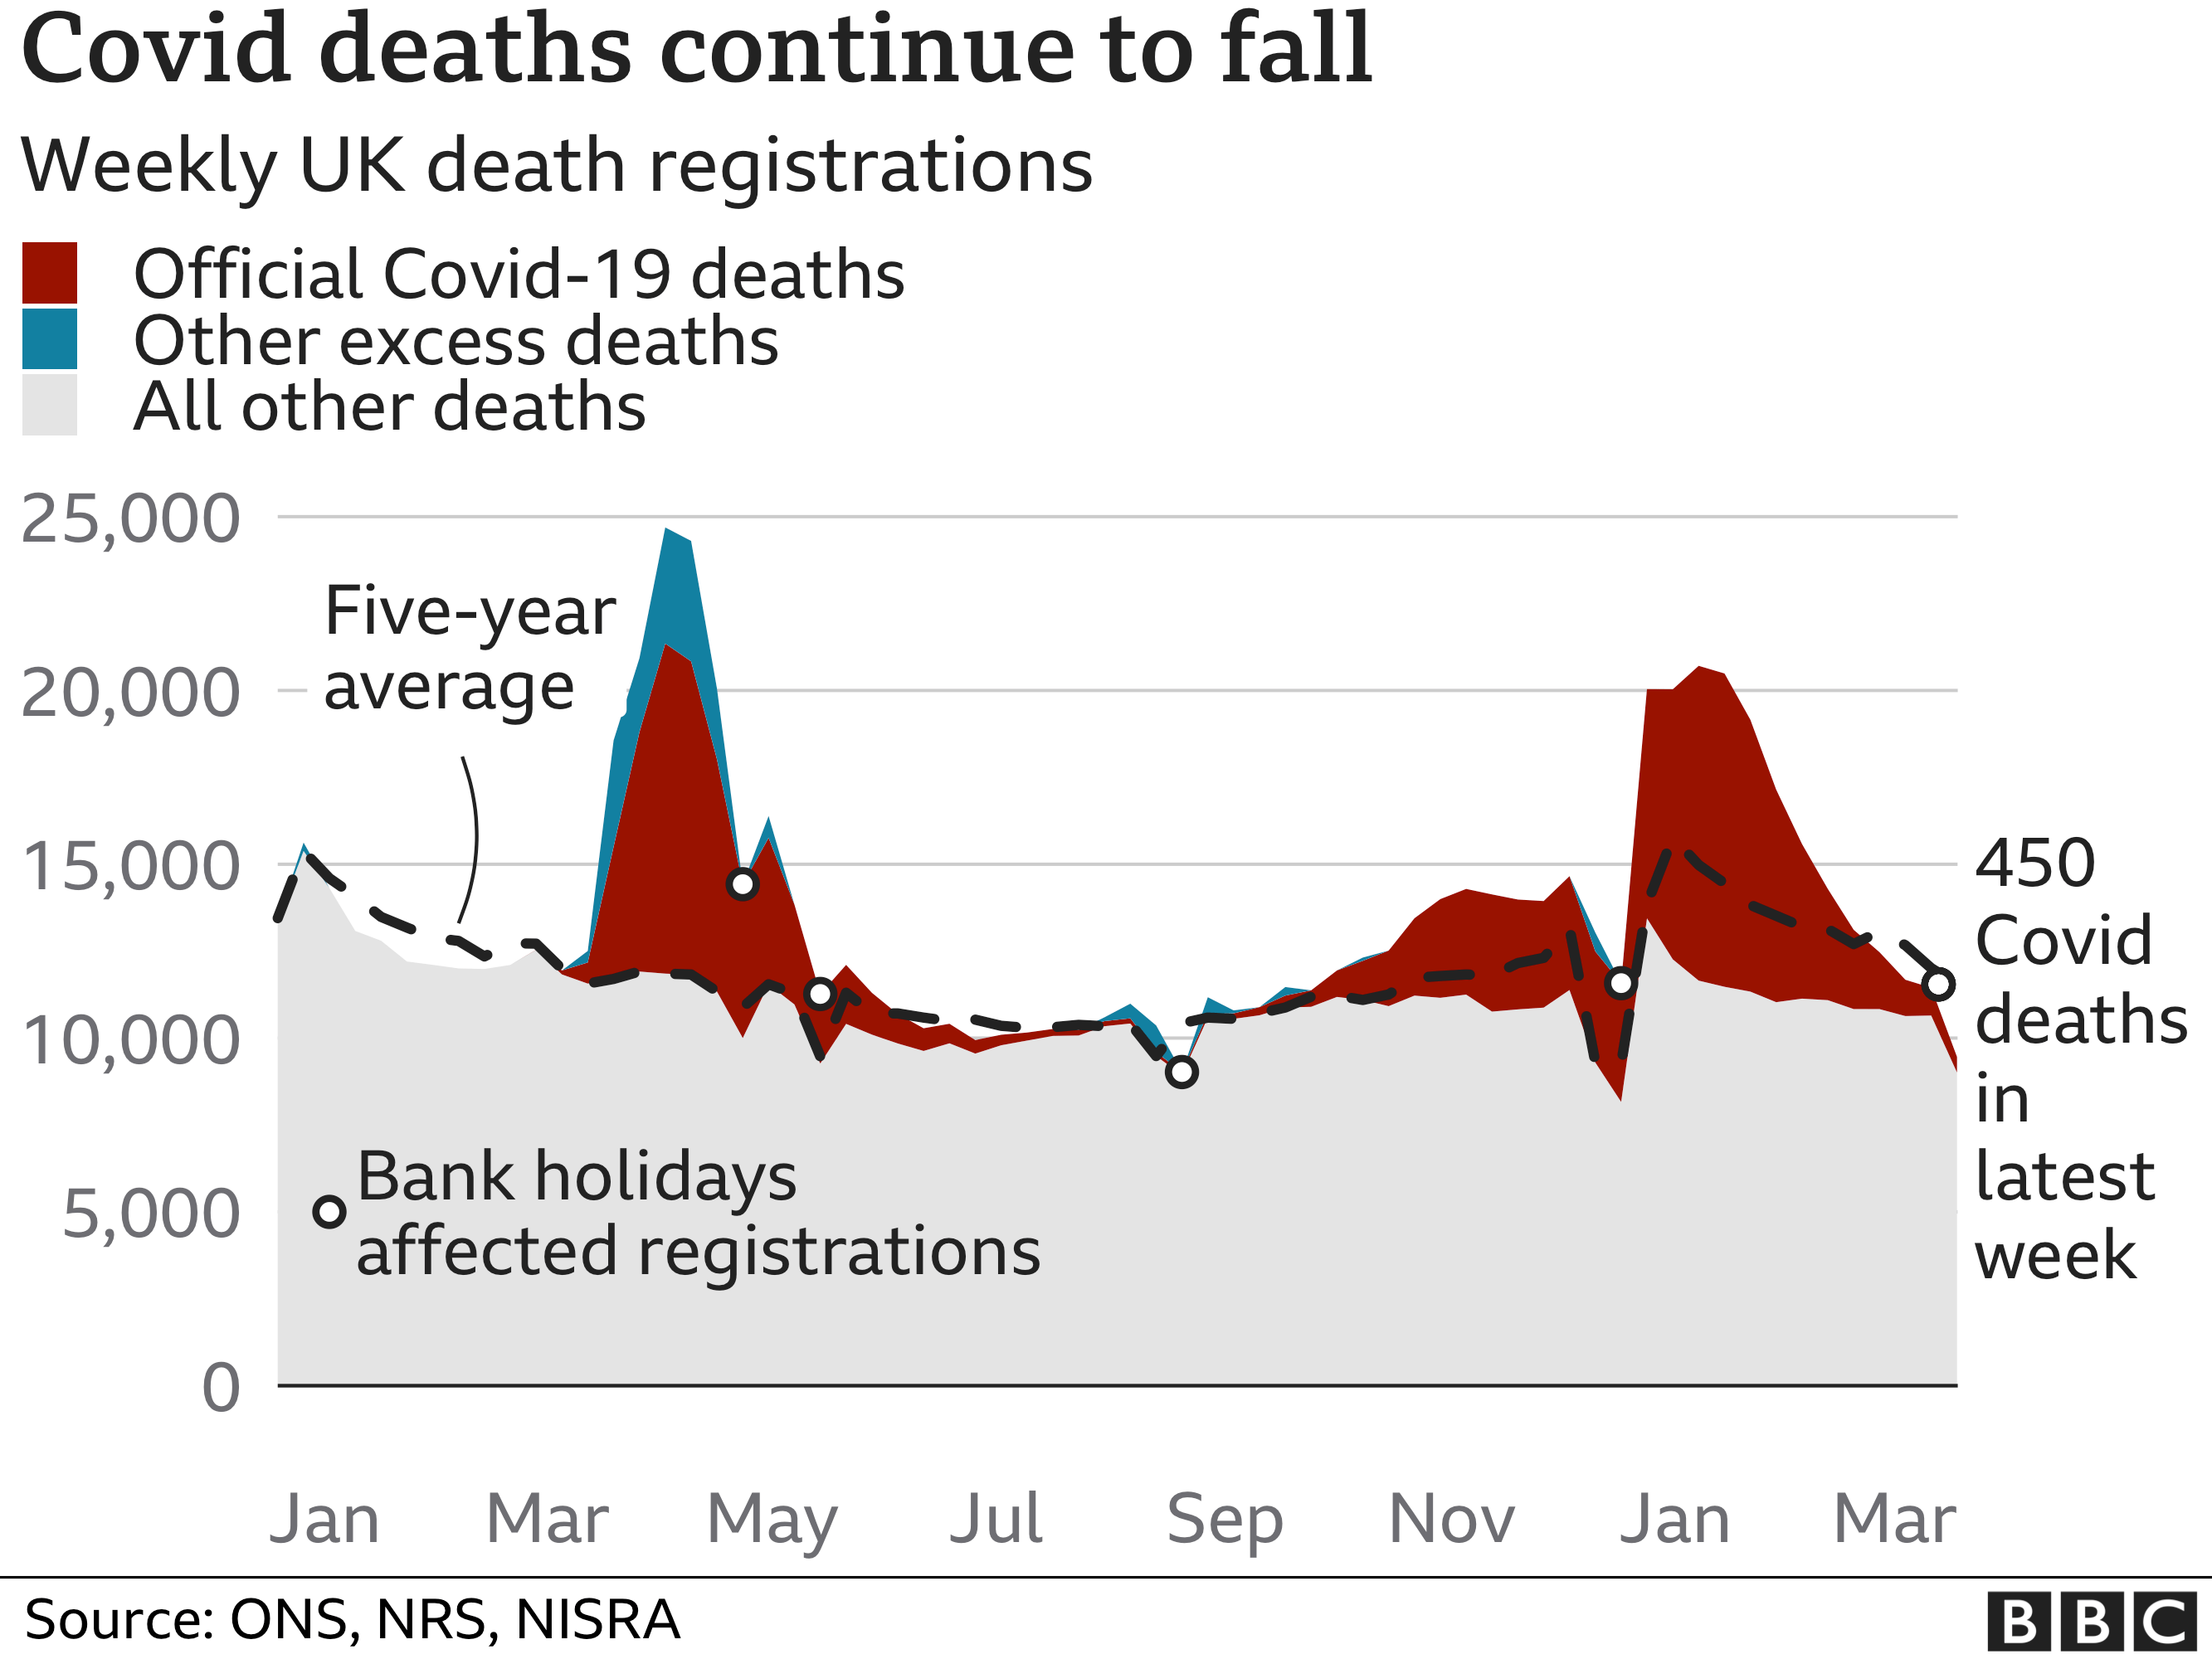 Chart shows Covid deaths are continuing to fall and excess deaths are below normal levels